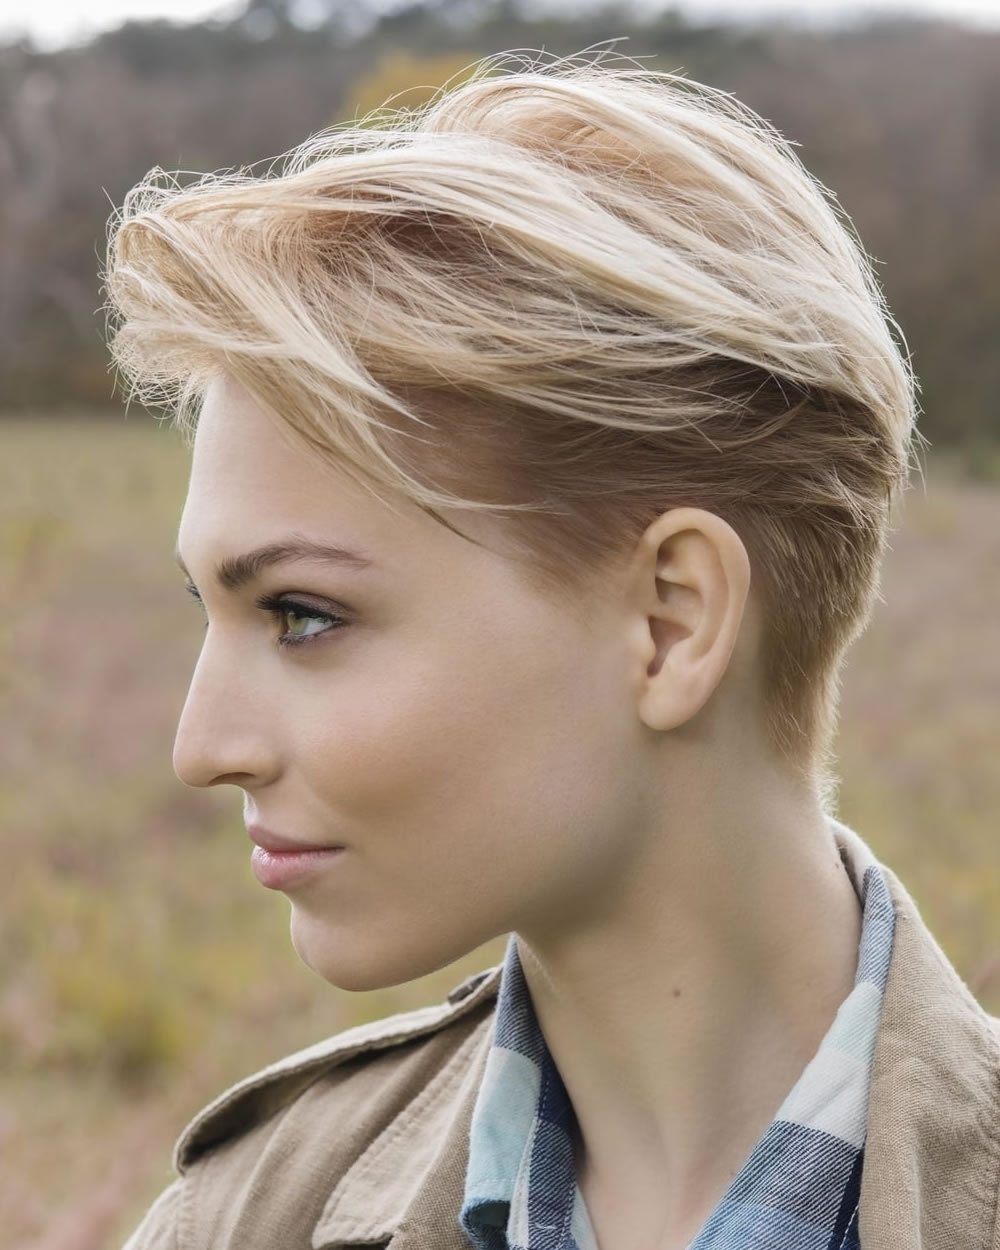 55 Hairstyles For Super Short Hair New Stunning Super Short With Regard To Popular Contemporary Pixie Hairstyles (View 10 of 20)